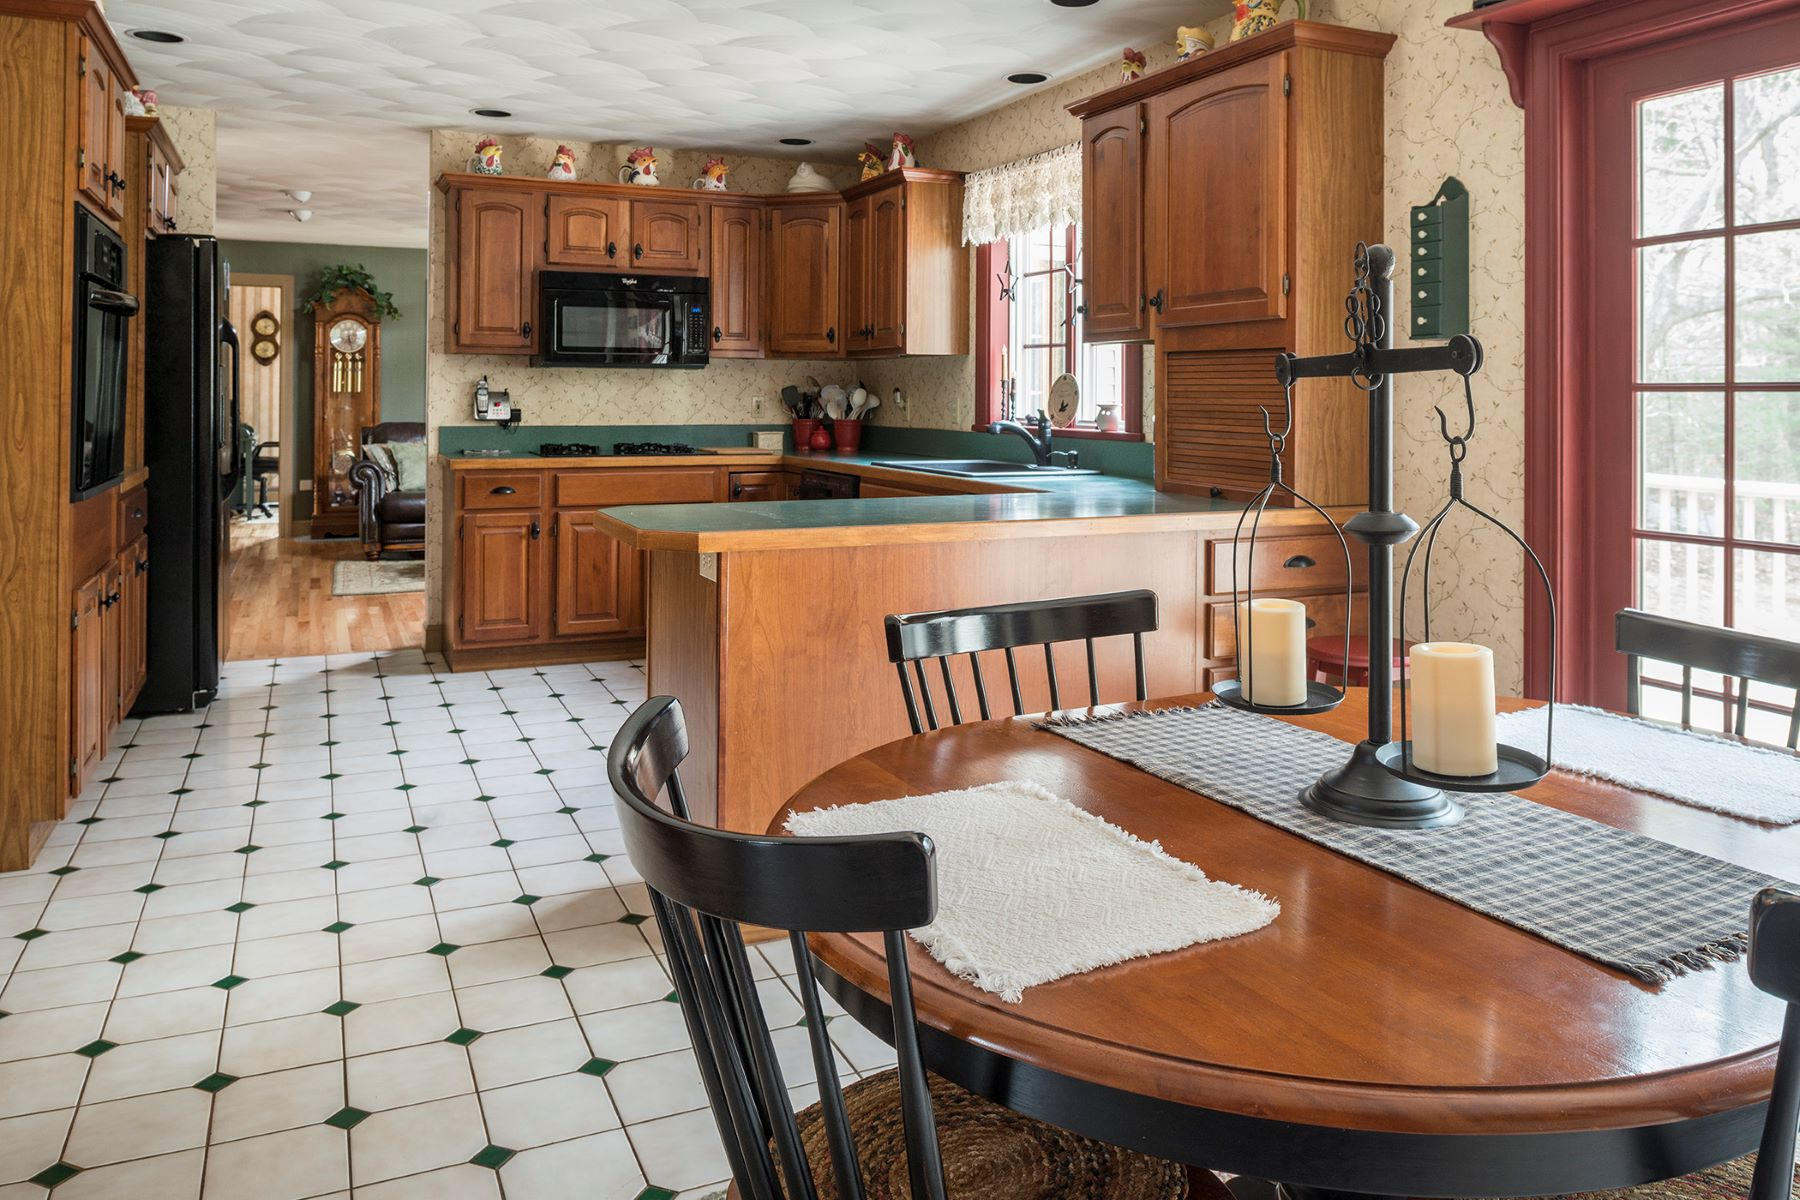 Additional photo for property listing at 26 Pine Ledge Drive 26 Pine Ledge Drive Scarborough, Maine 04074 United States